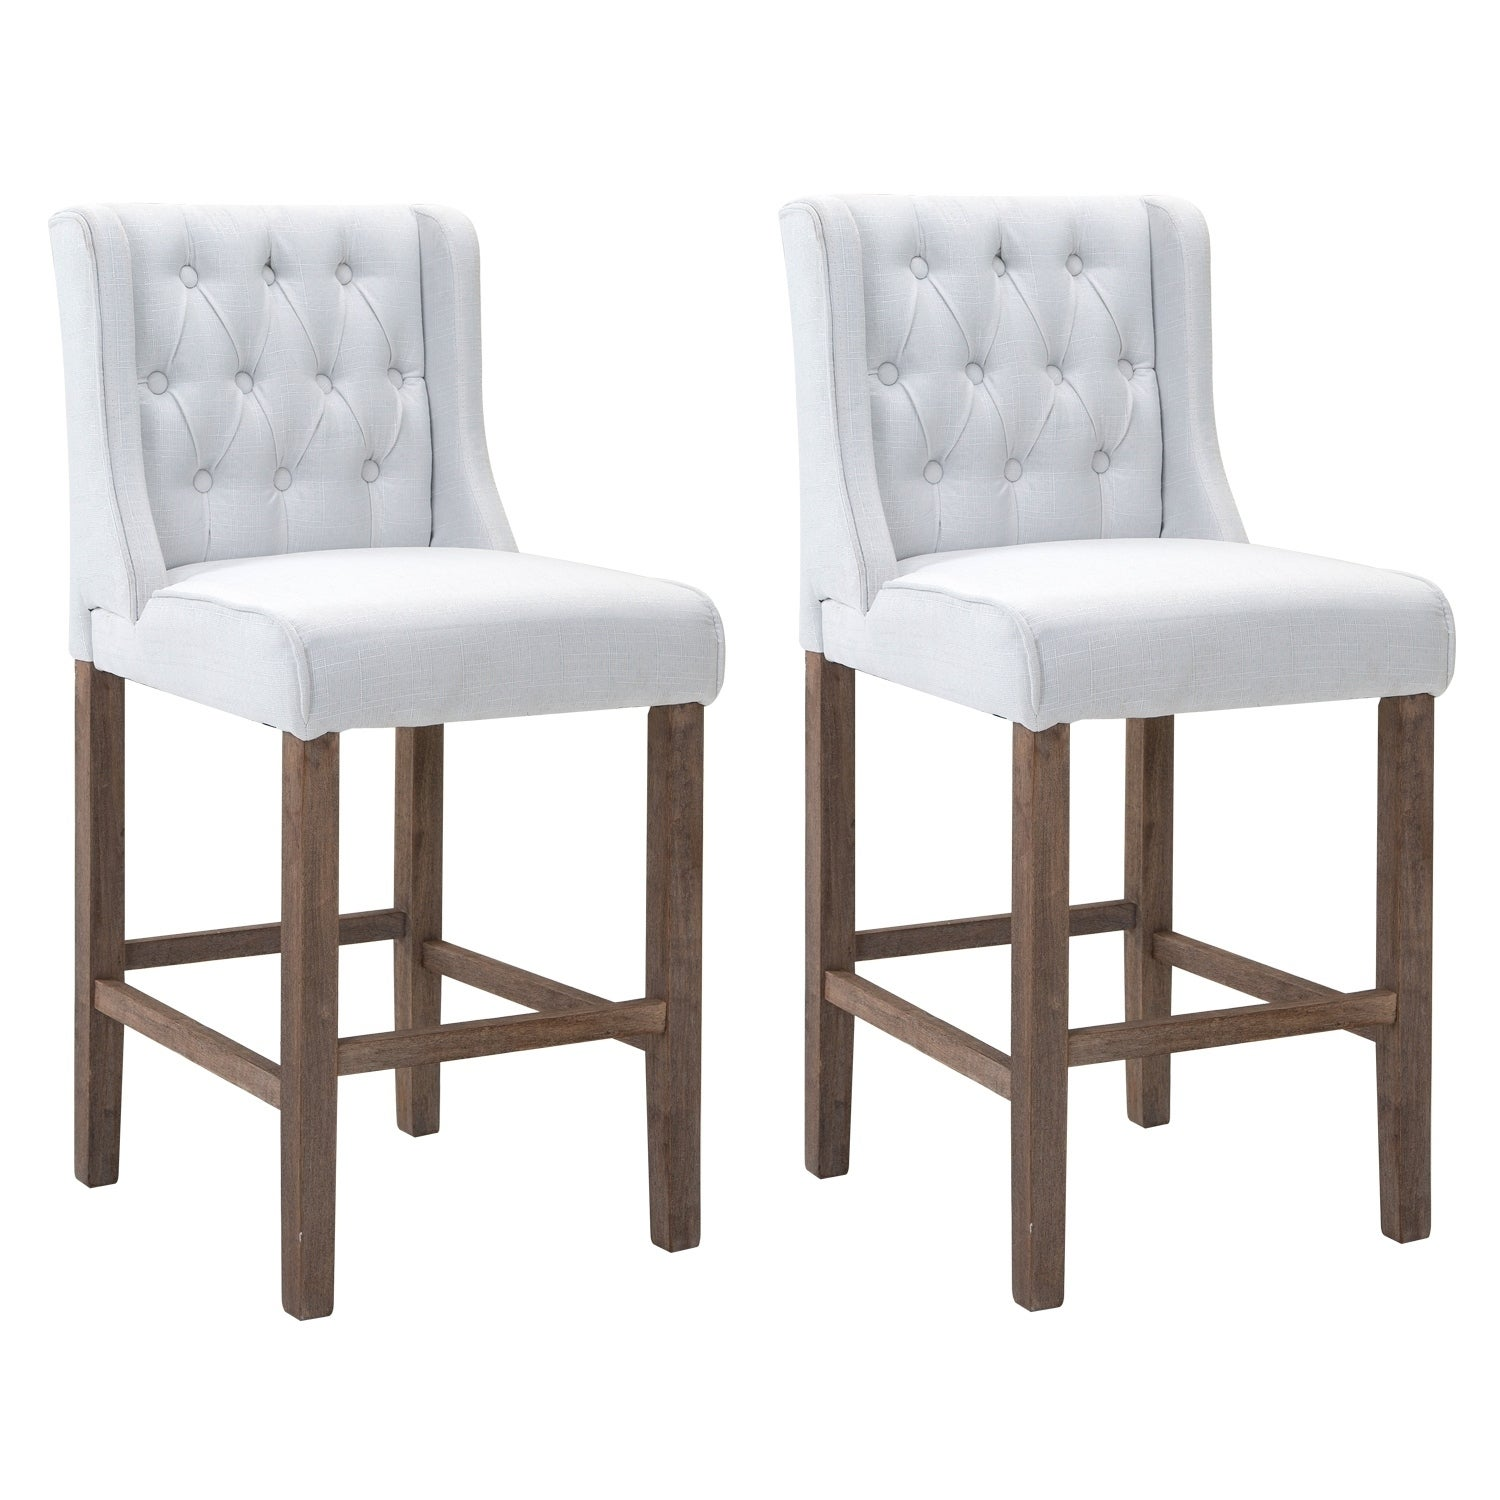 Shop homcom modern bar height fabric wingback dining chairs with tufted buttons cream white set of 2 chairs free shipping today overstock com